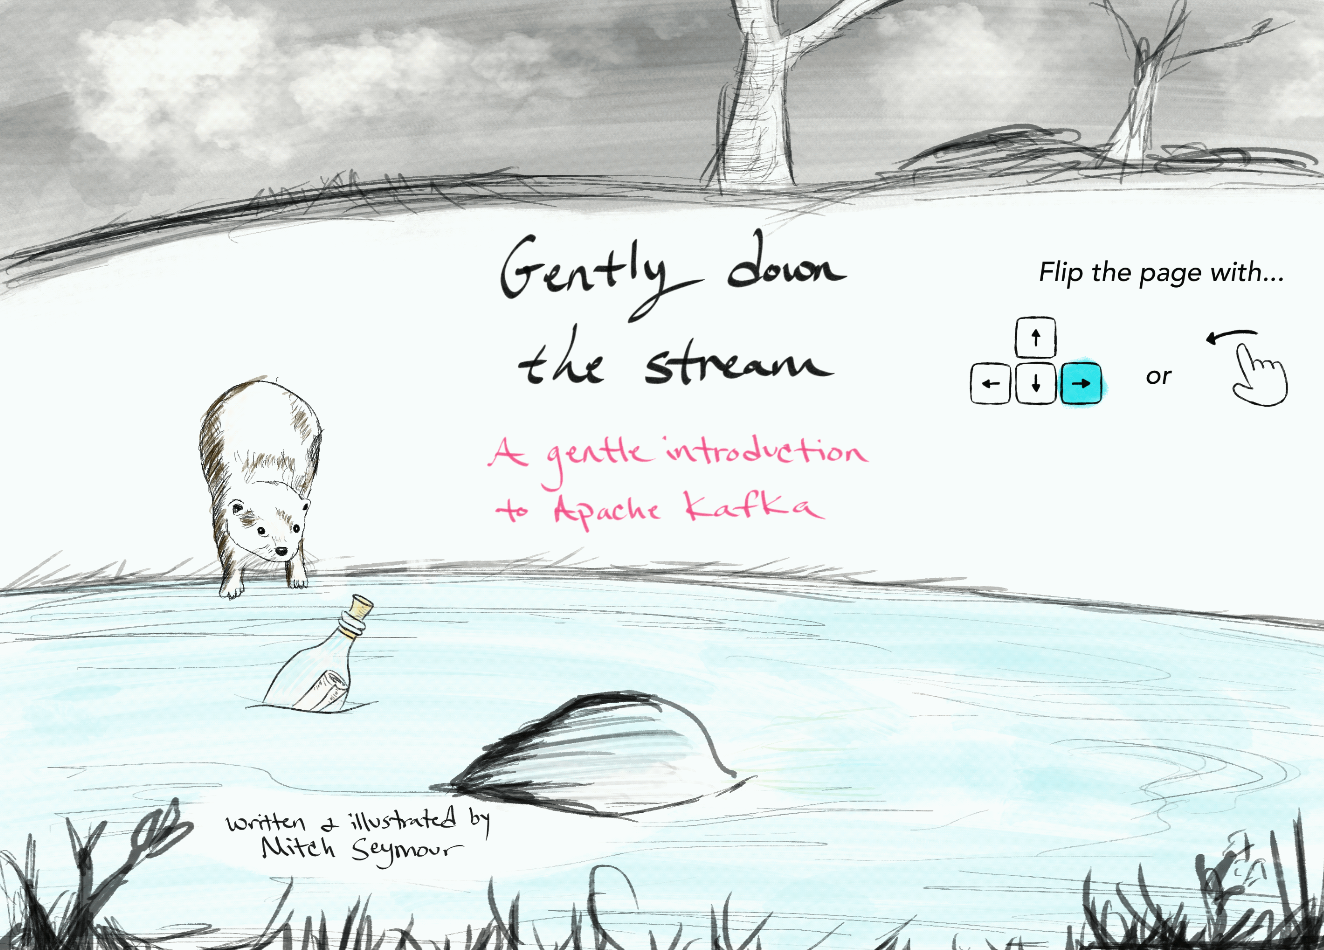 """The cover of the book. """"Gently down the stream: a gentle introduction to Apache Kafka"""". Soft pastel colors with a sketch of an otter."""